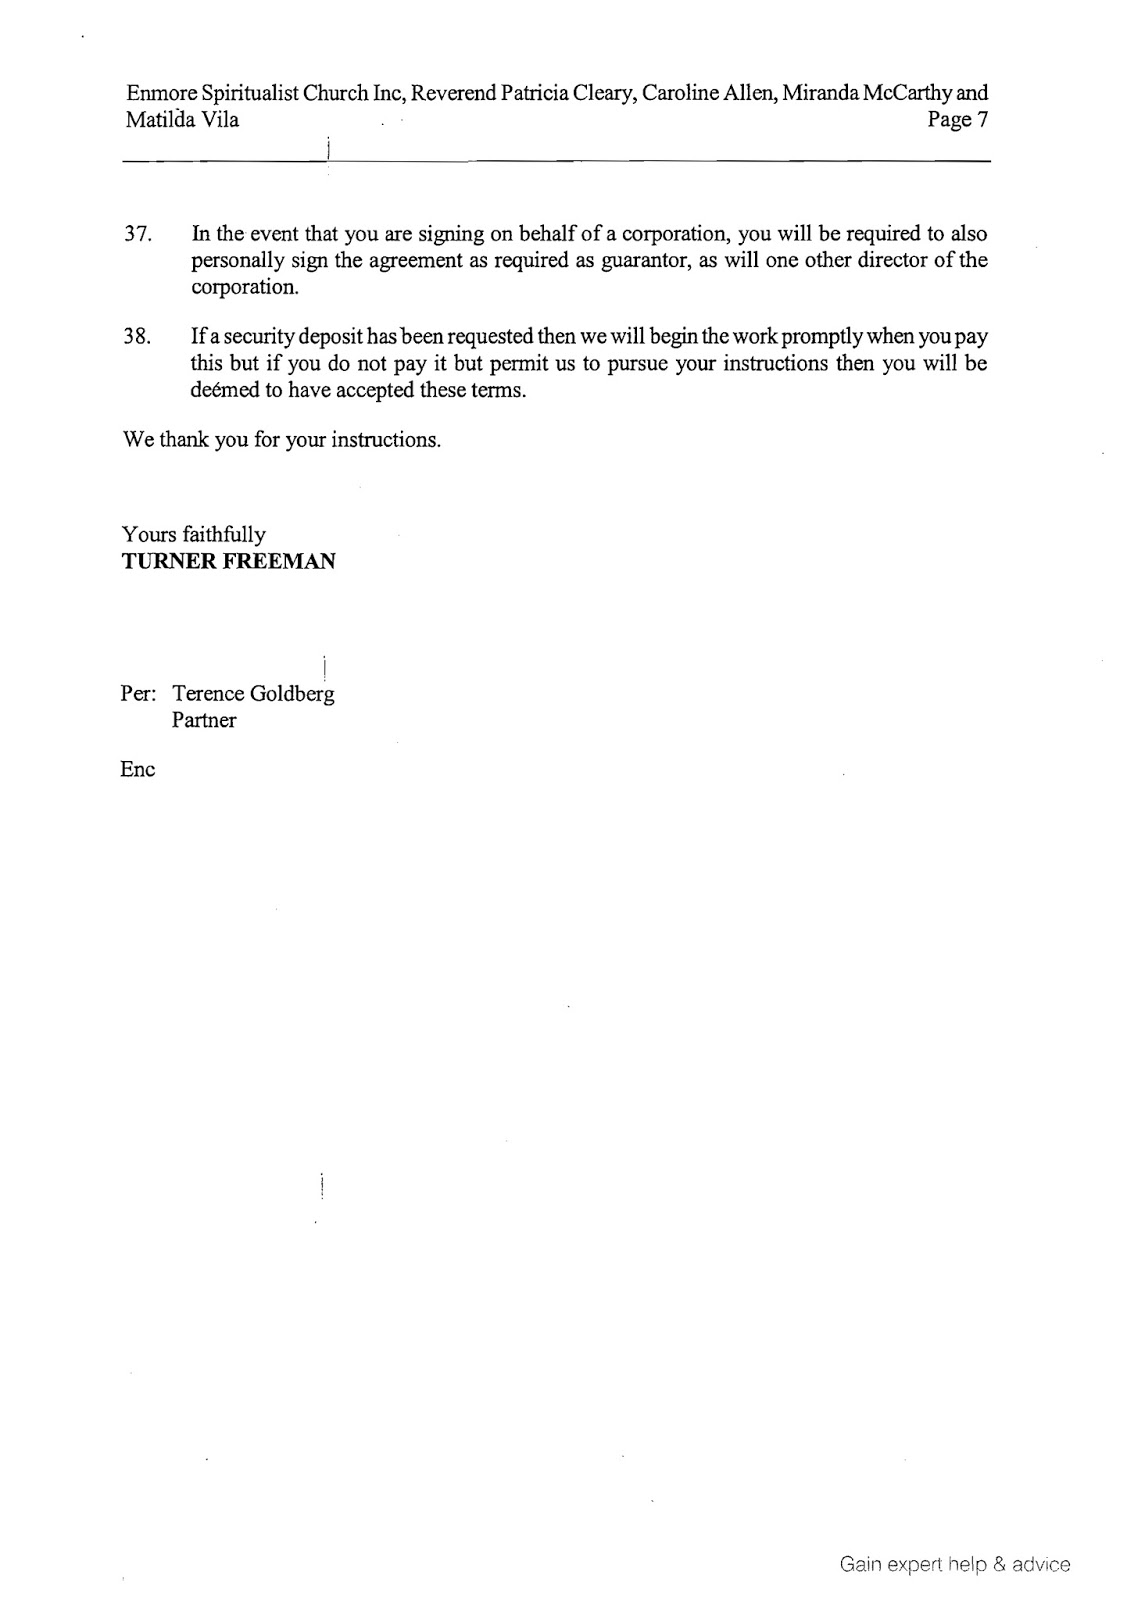 Filed Application for Assessment of Solicitor/Client Costs